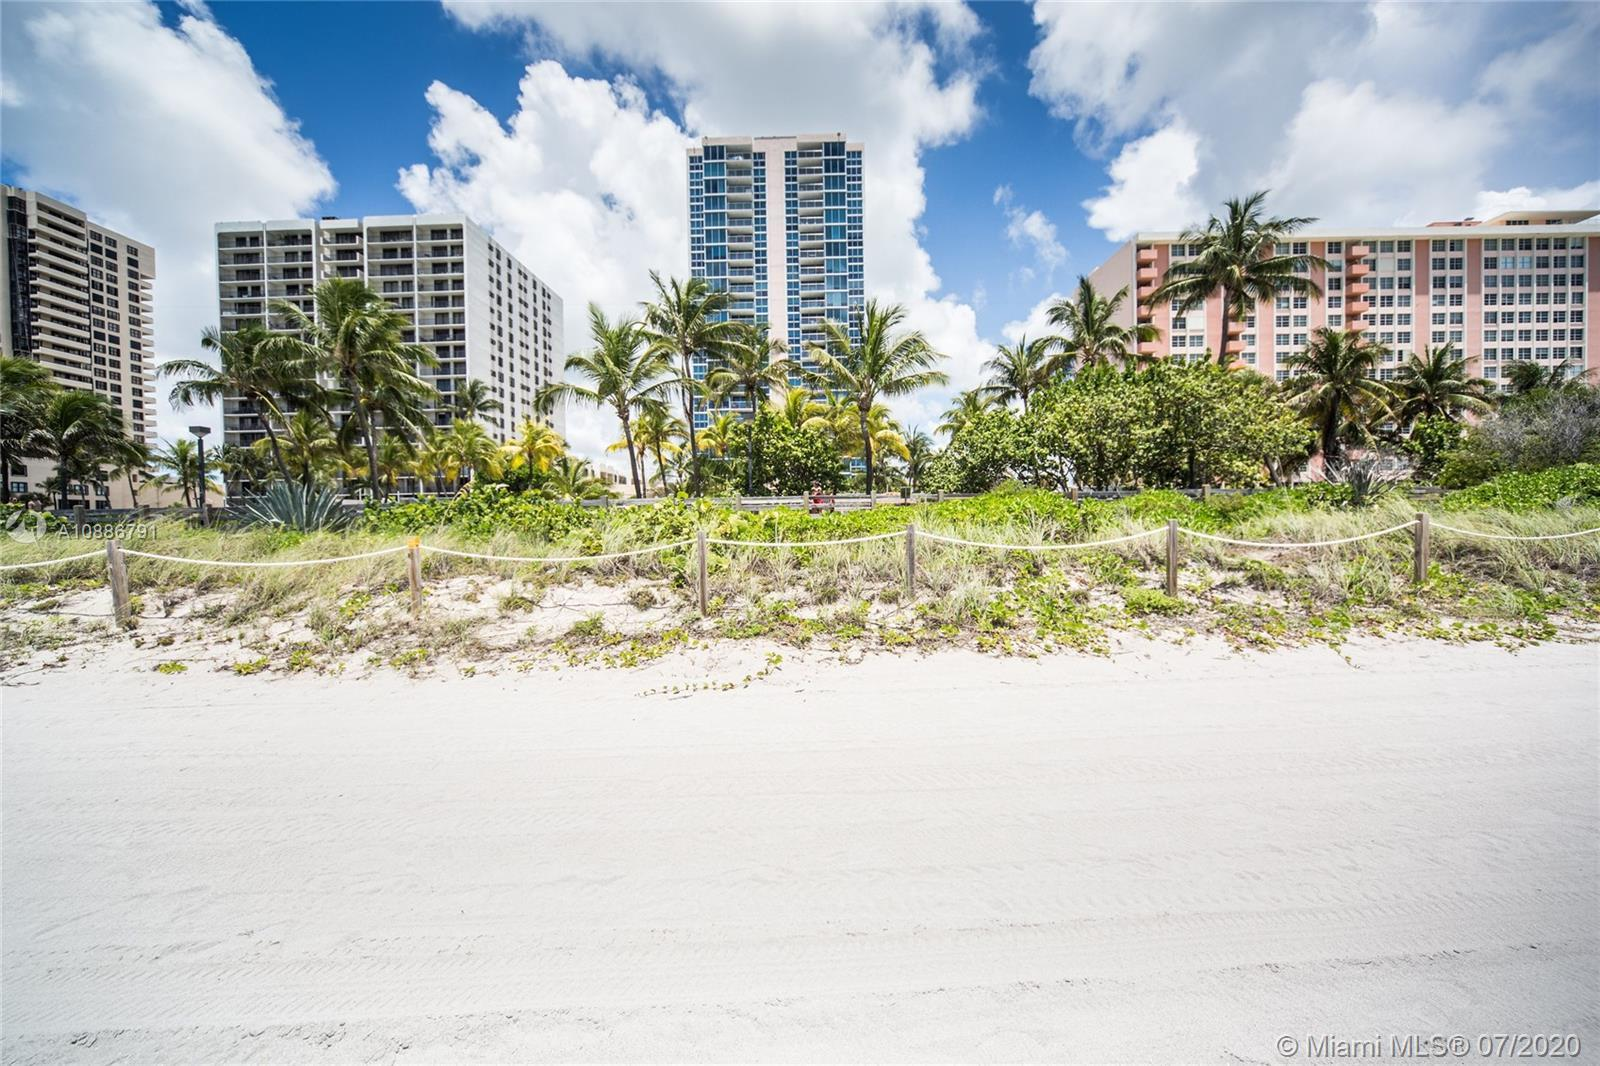 Best price in this high end luxury area. Remodeled building . Neighbors with Hotel One, Faena and Co